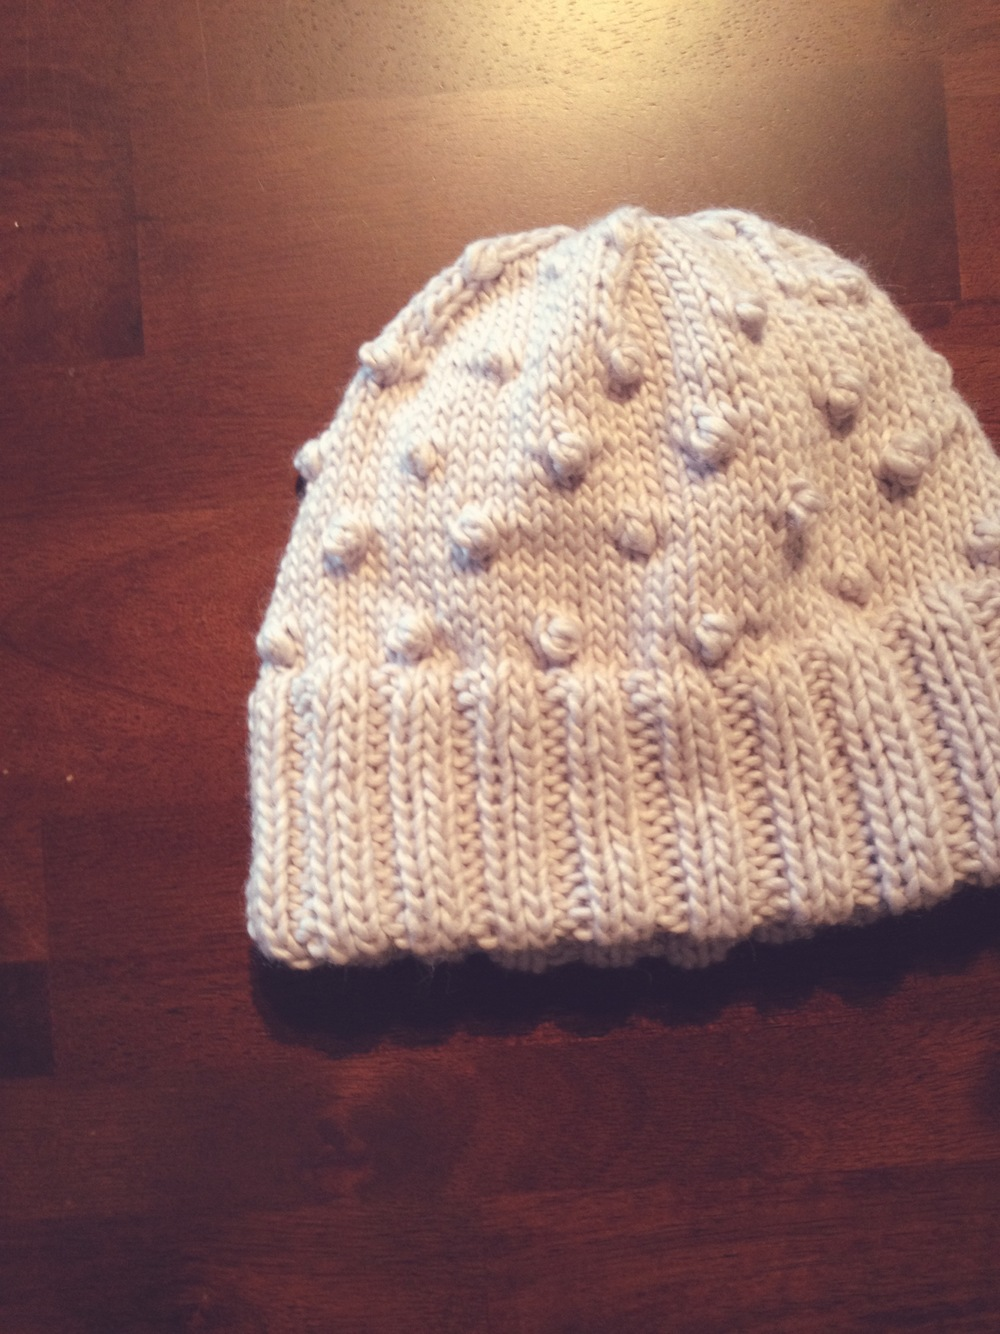 This hat is a modified version of Erica Knit's Diode pattern